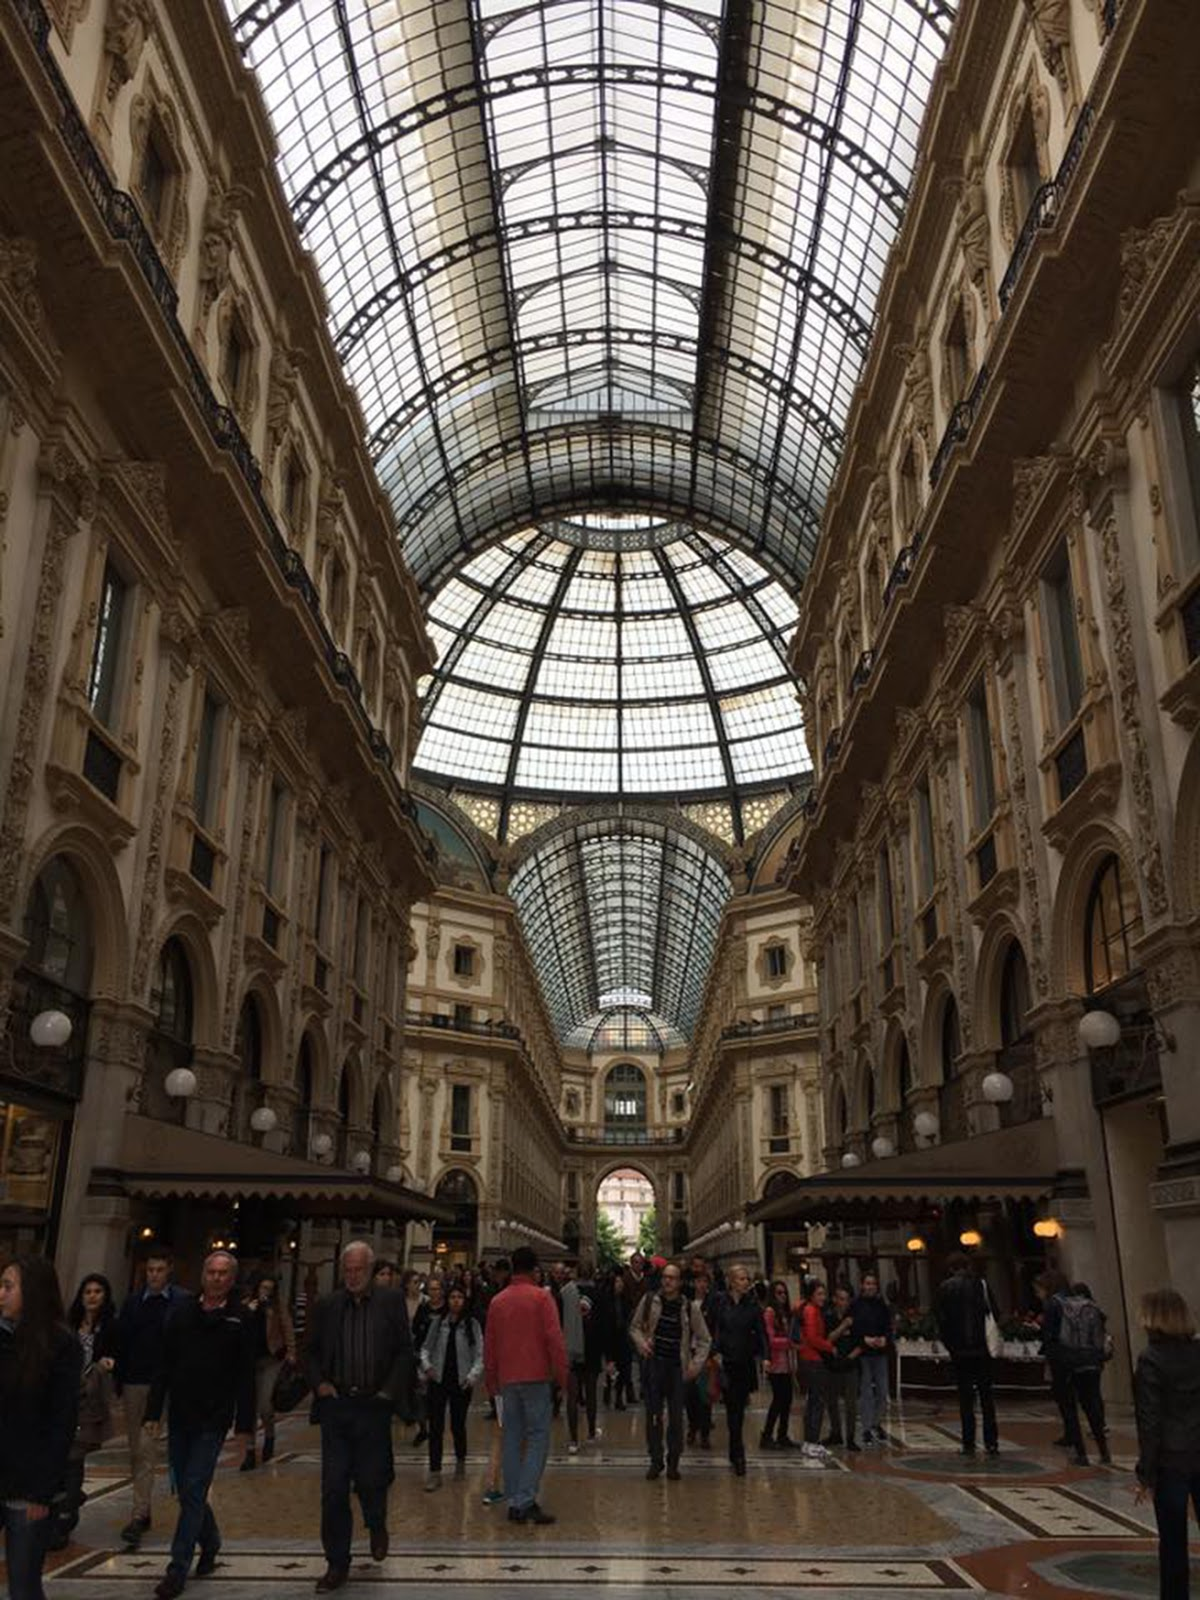 galleria vitorrio emanuele, milan shopping, shopping in milan, luxury shopping, designer shops in milan, things to see in Milan, things to do in Milan